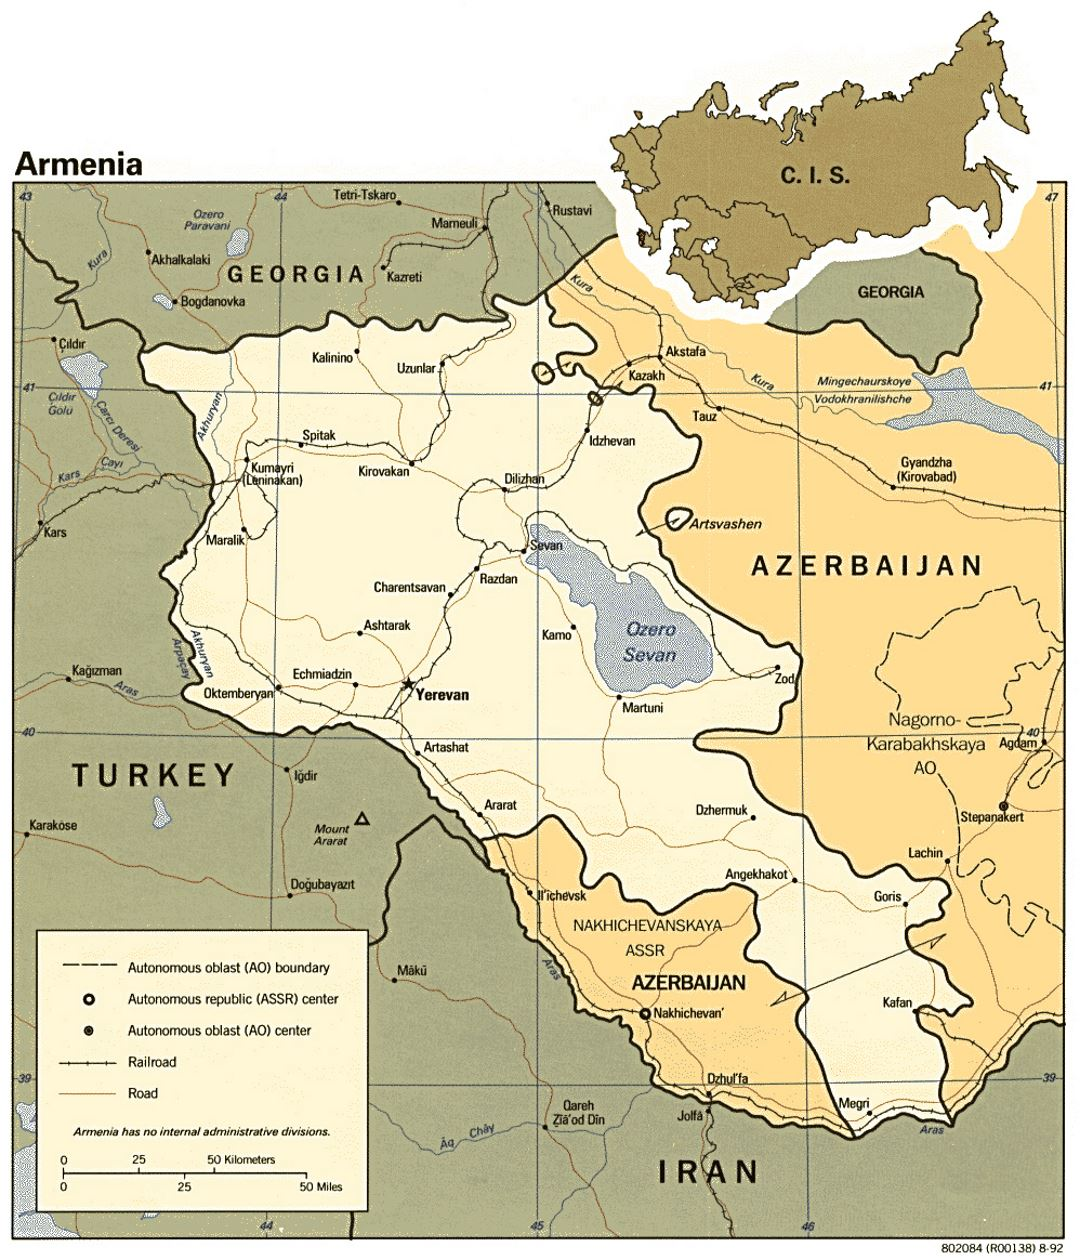 Detailed political map of Armenia with roads, railroads and major cities - 1992